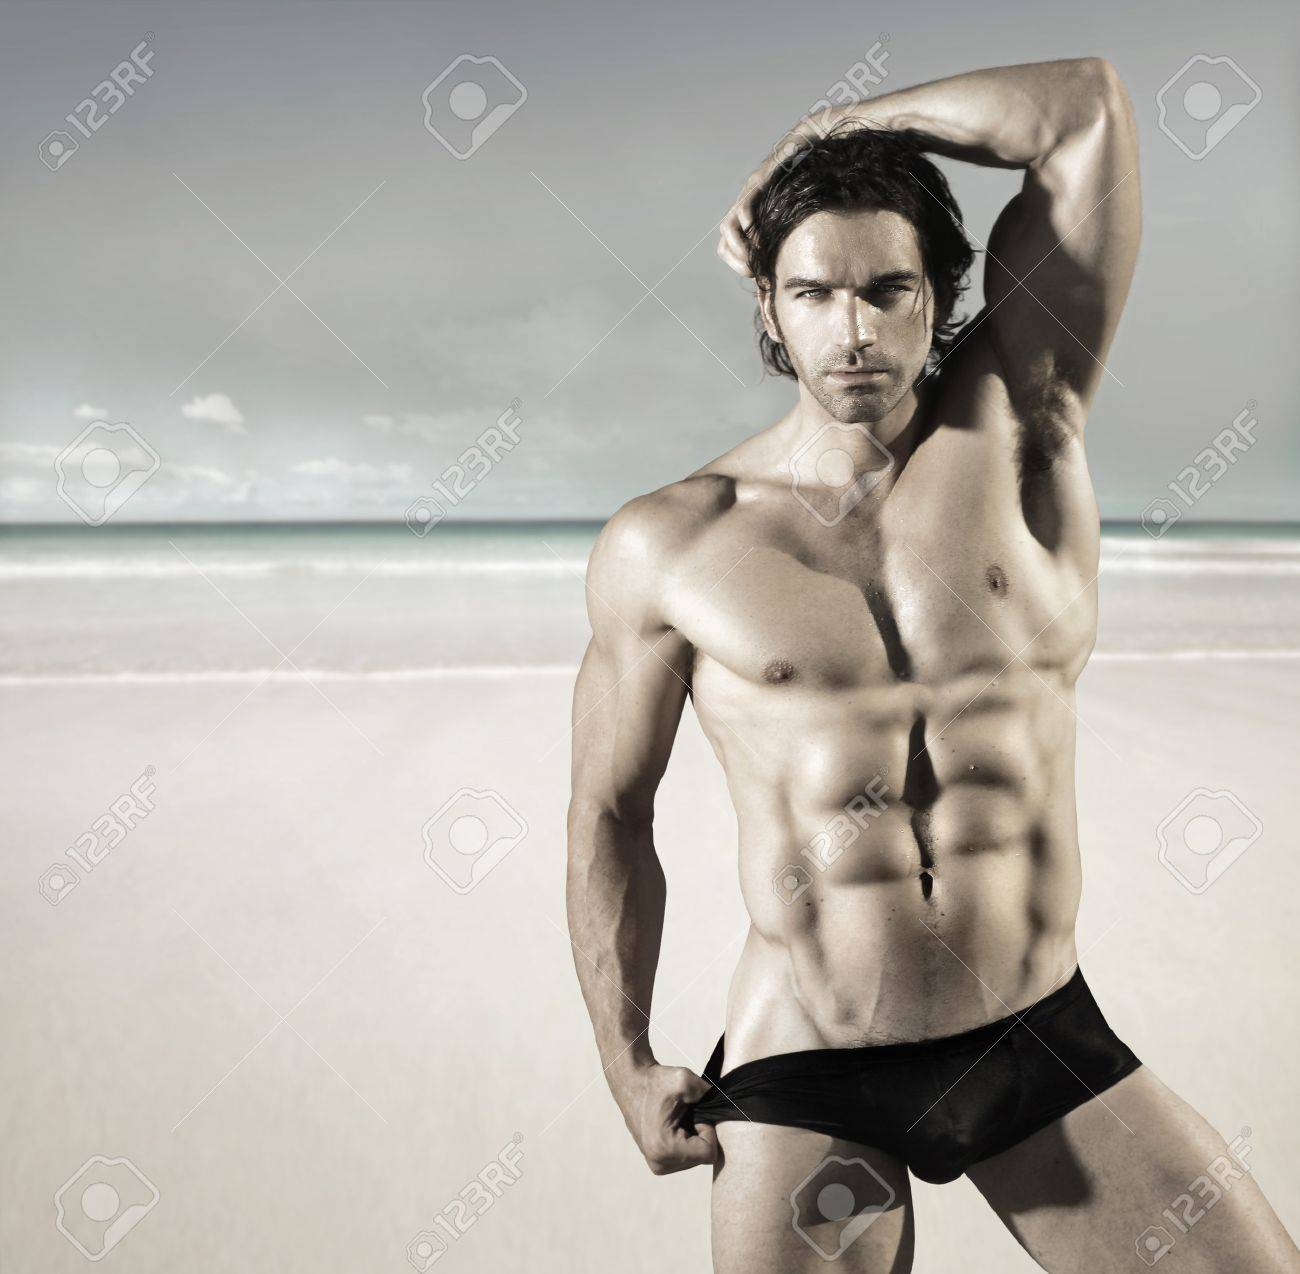 Sexy portrait of a hot buff male fitness model pulling at his bikini briefs on the beach Stock Photo - 12812886